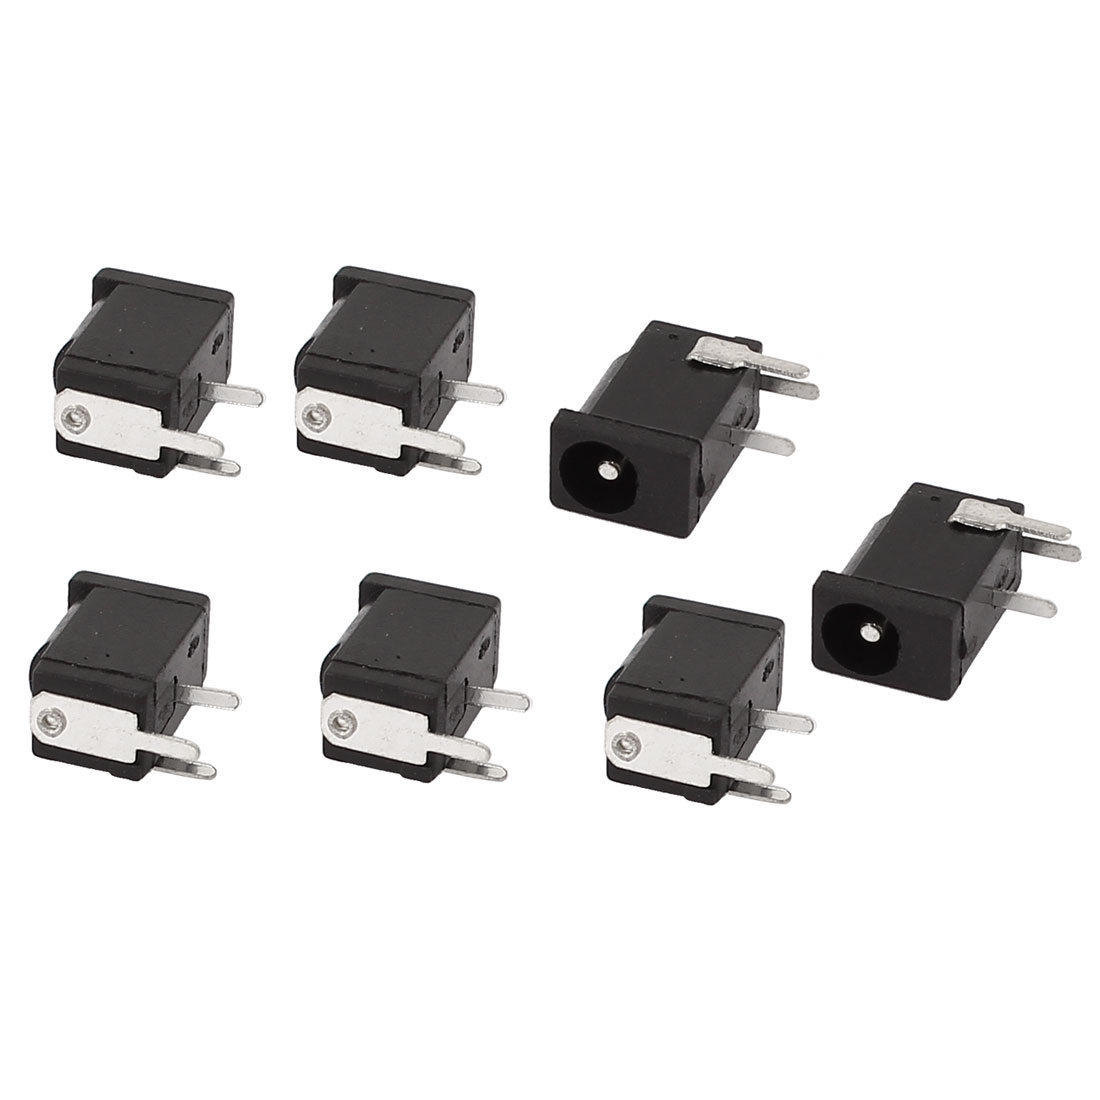 7 Pieces DC 3.5mmx1.1mm Power Jack Socket Female Panel Mount Connector Adapter